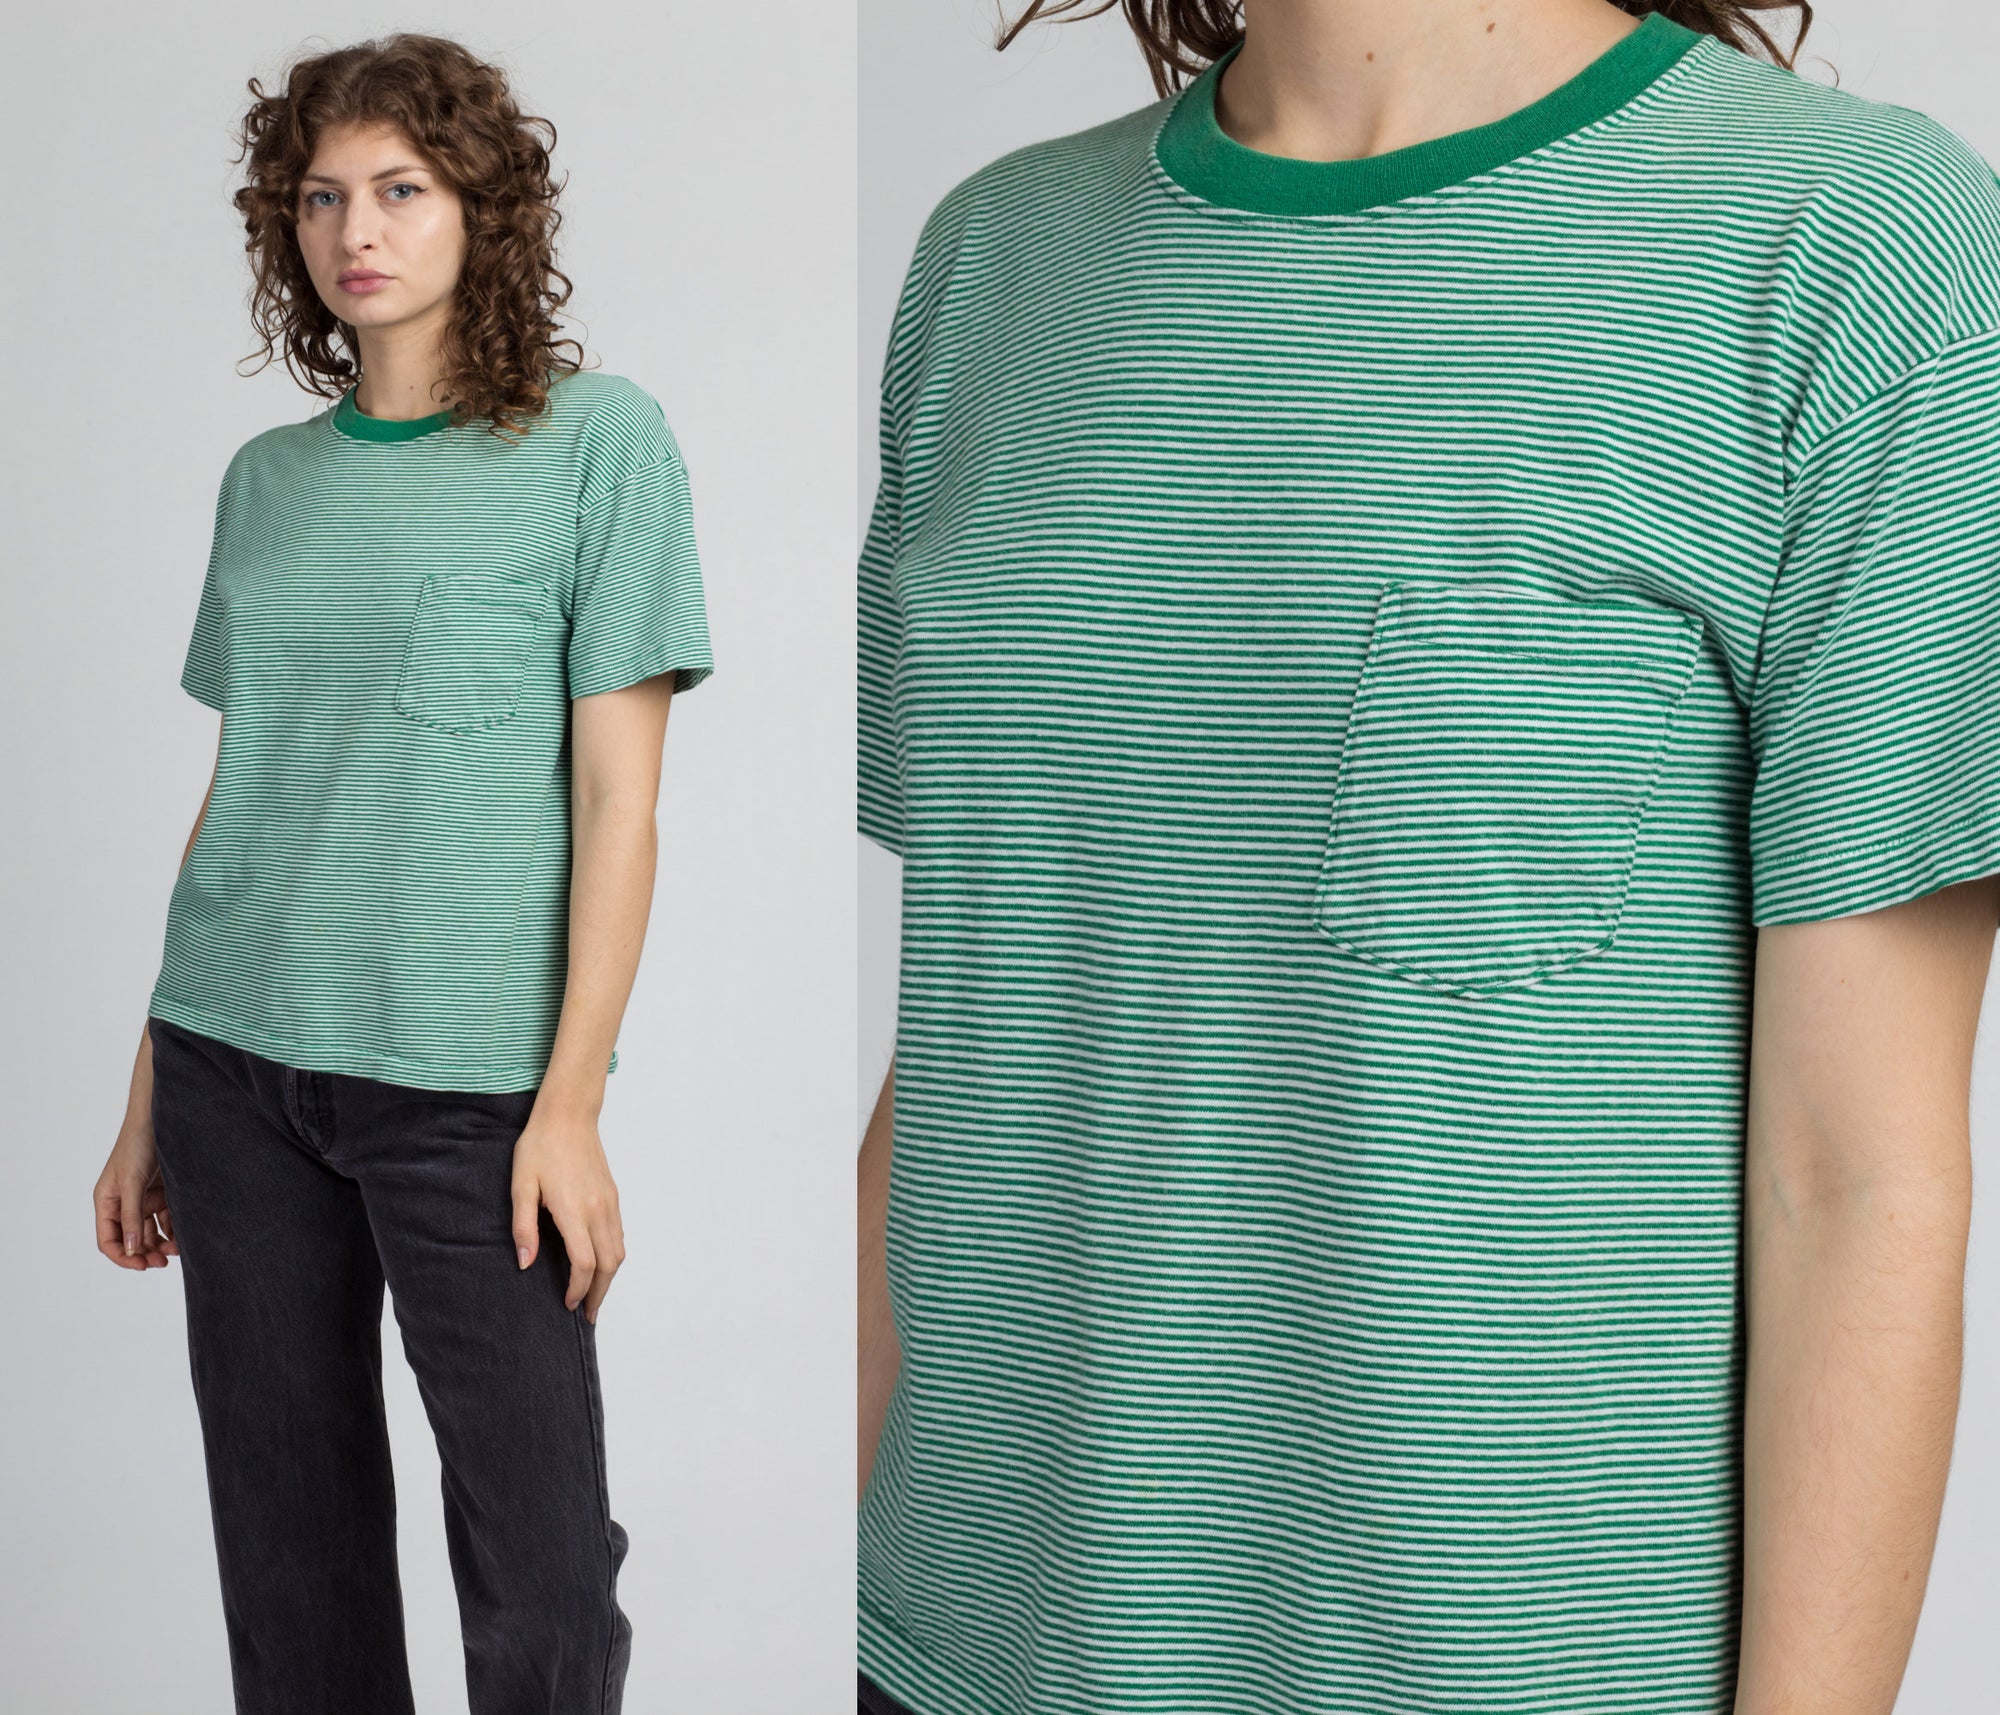 80s Green & White Striped Gap Pocket Tee - Small